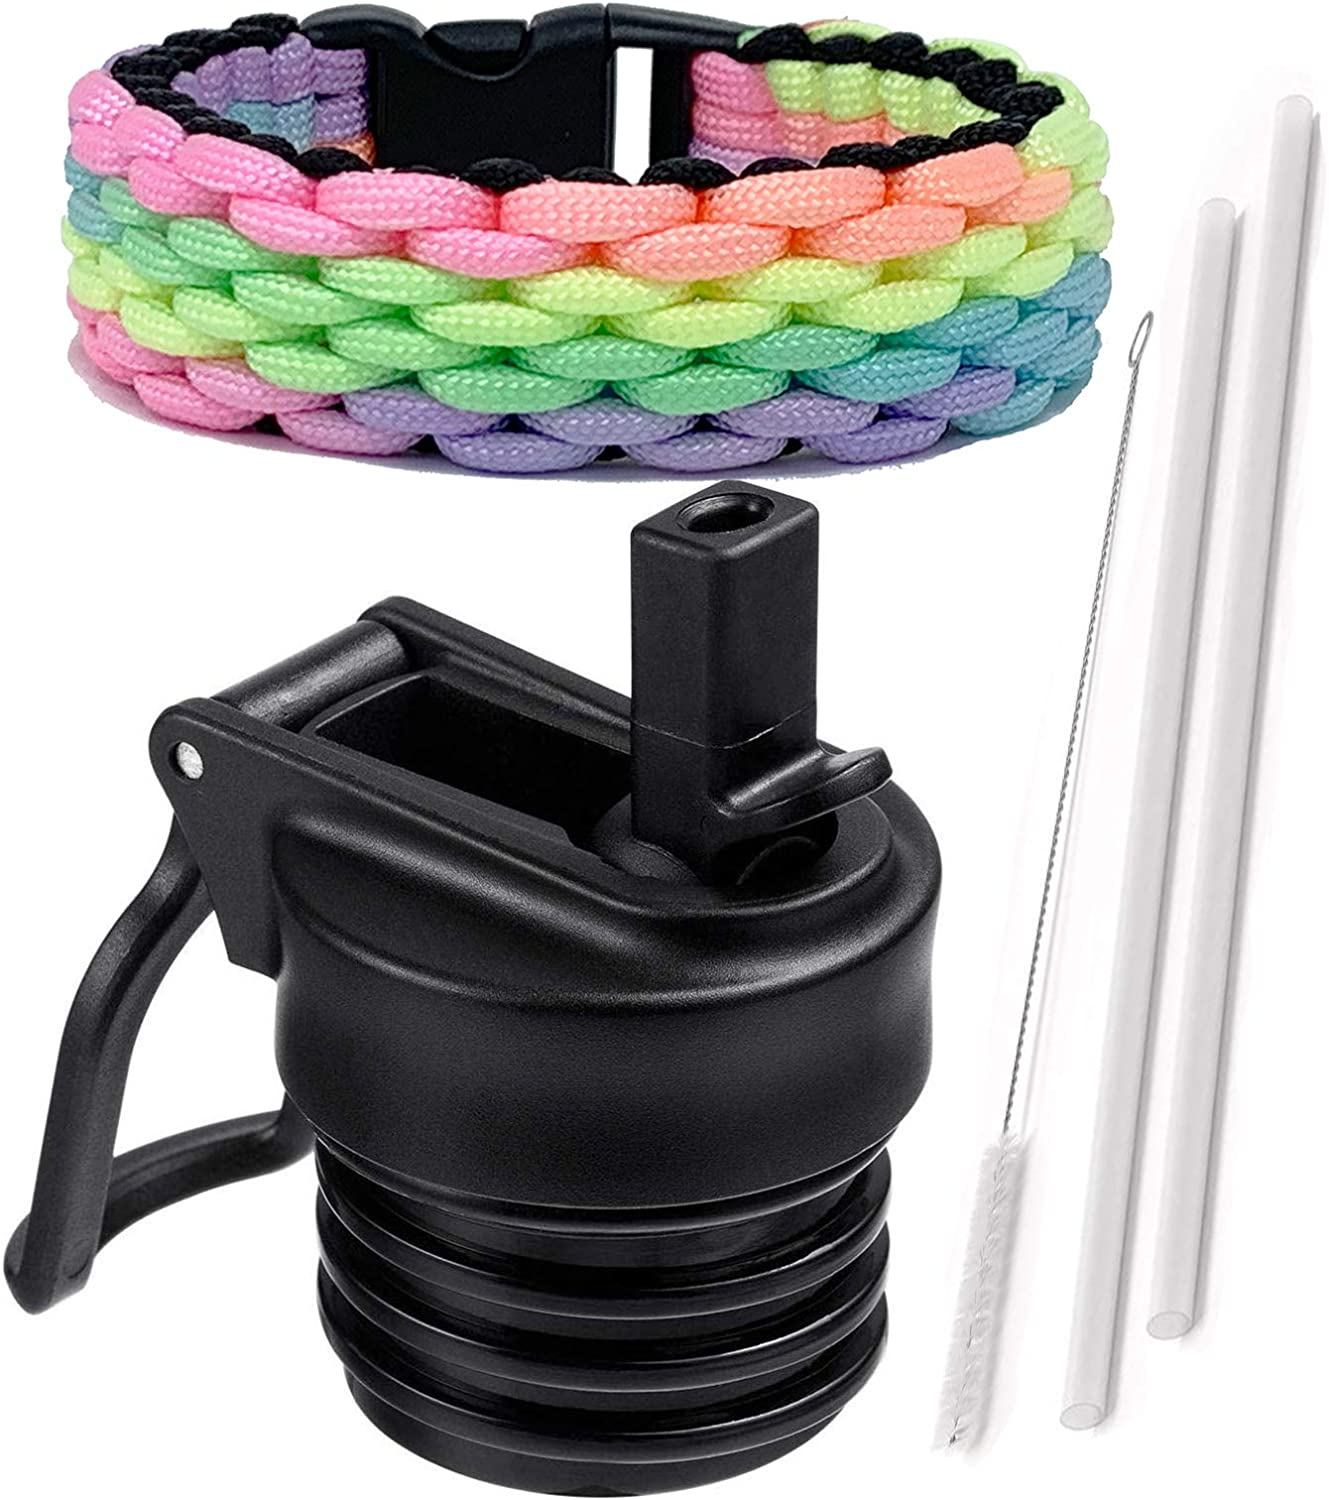 One MissionX Straw Lid and Paracord Handle Set, Compatible with Hydro Flask Standard Mouth 24, 21, 18, 12 oz Water Bottle & Simple Modern Ascent Bottles. Leak Proof